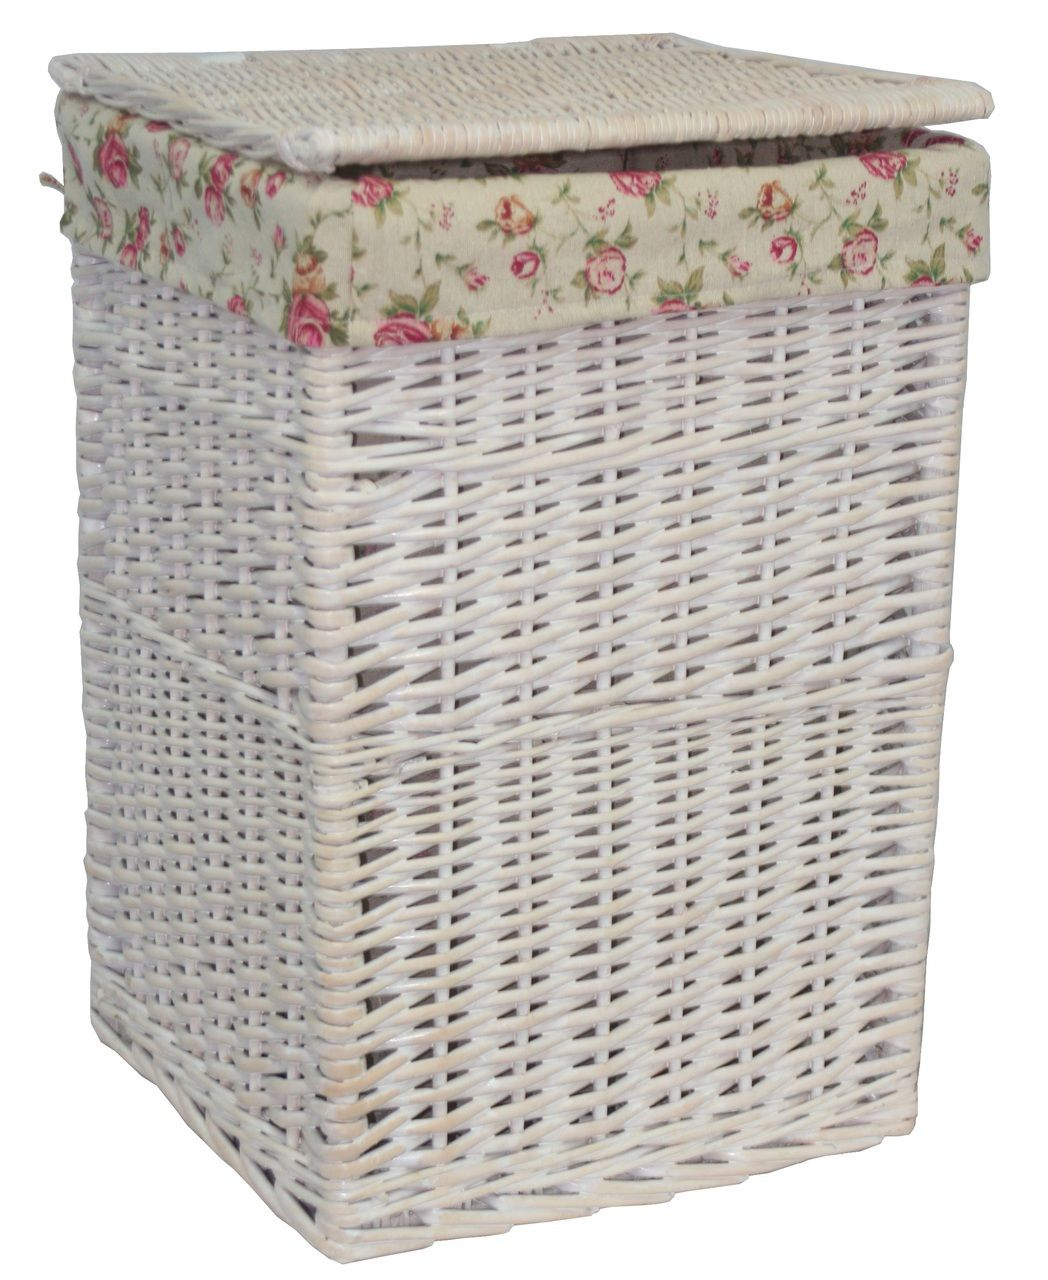 Wash Basket Square White Wash Laundry Basket With A Garden Rose Lining